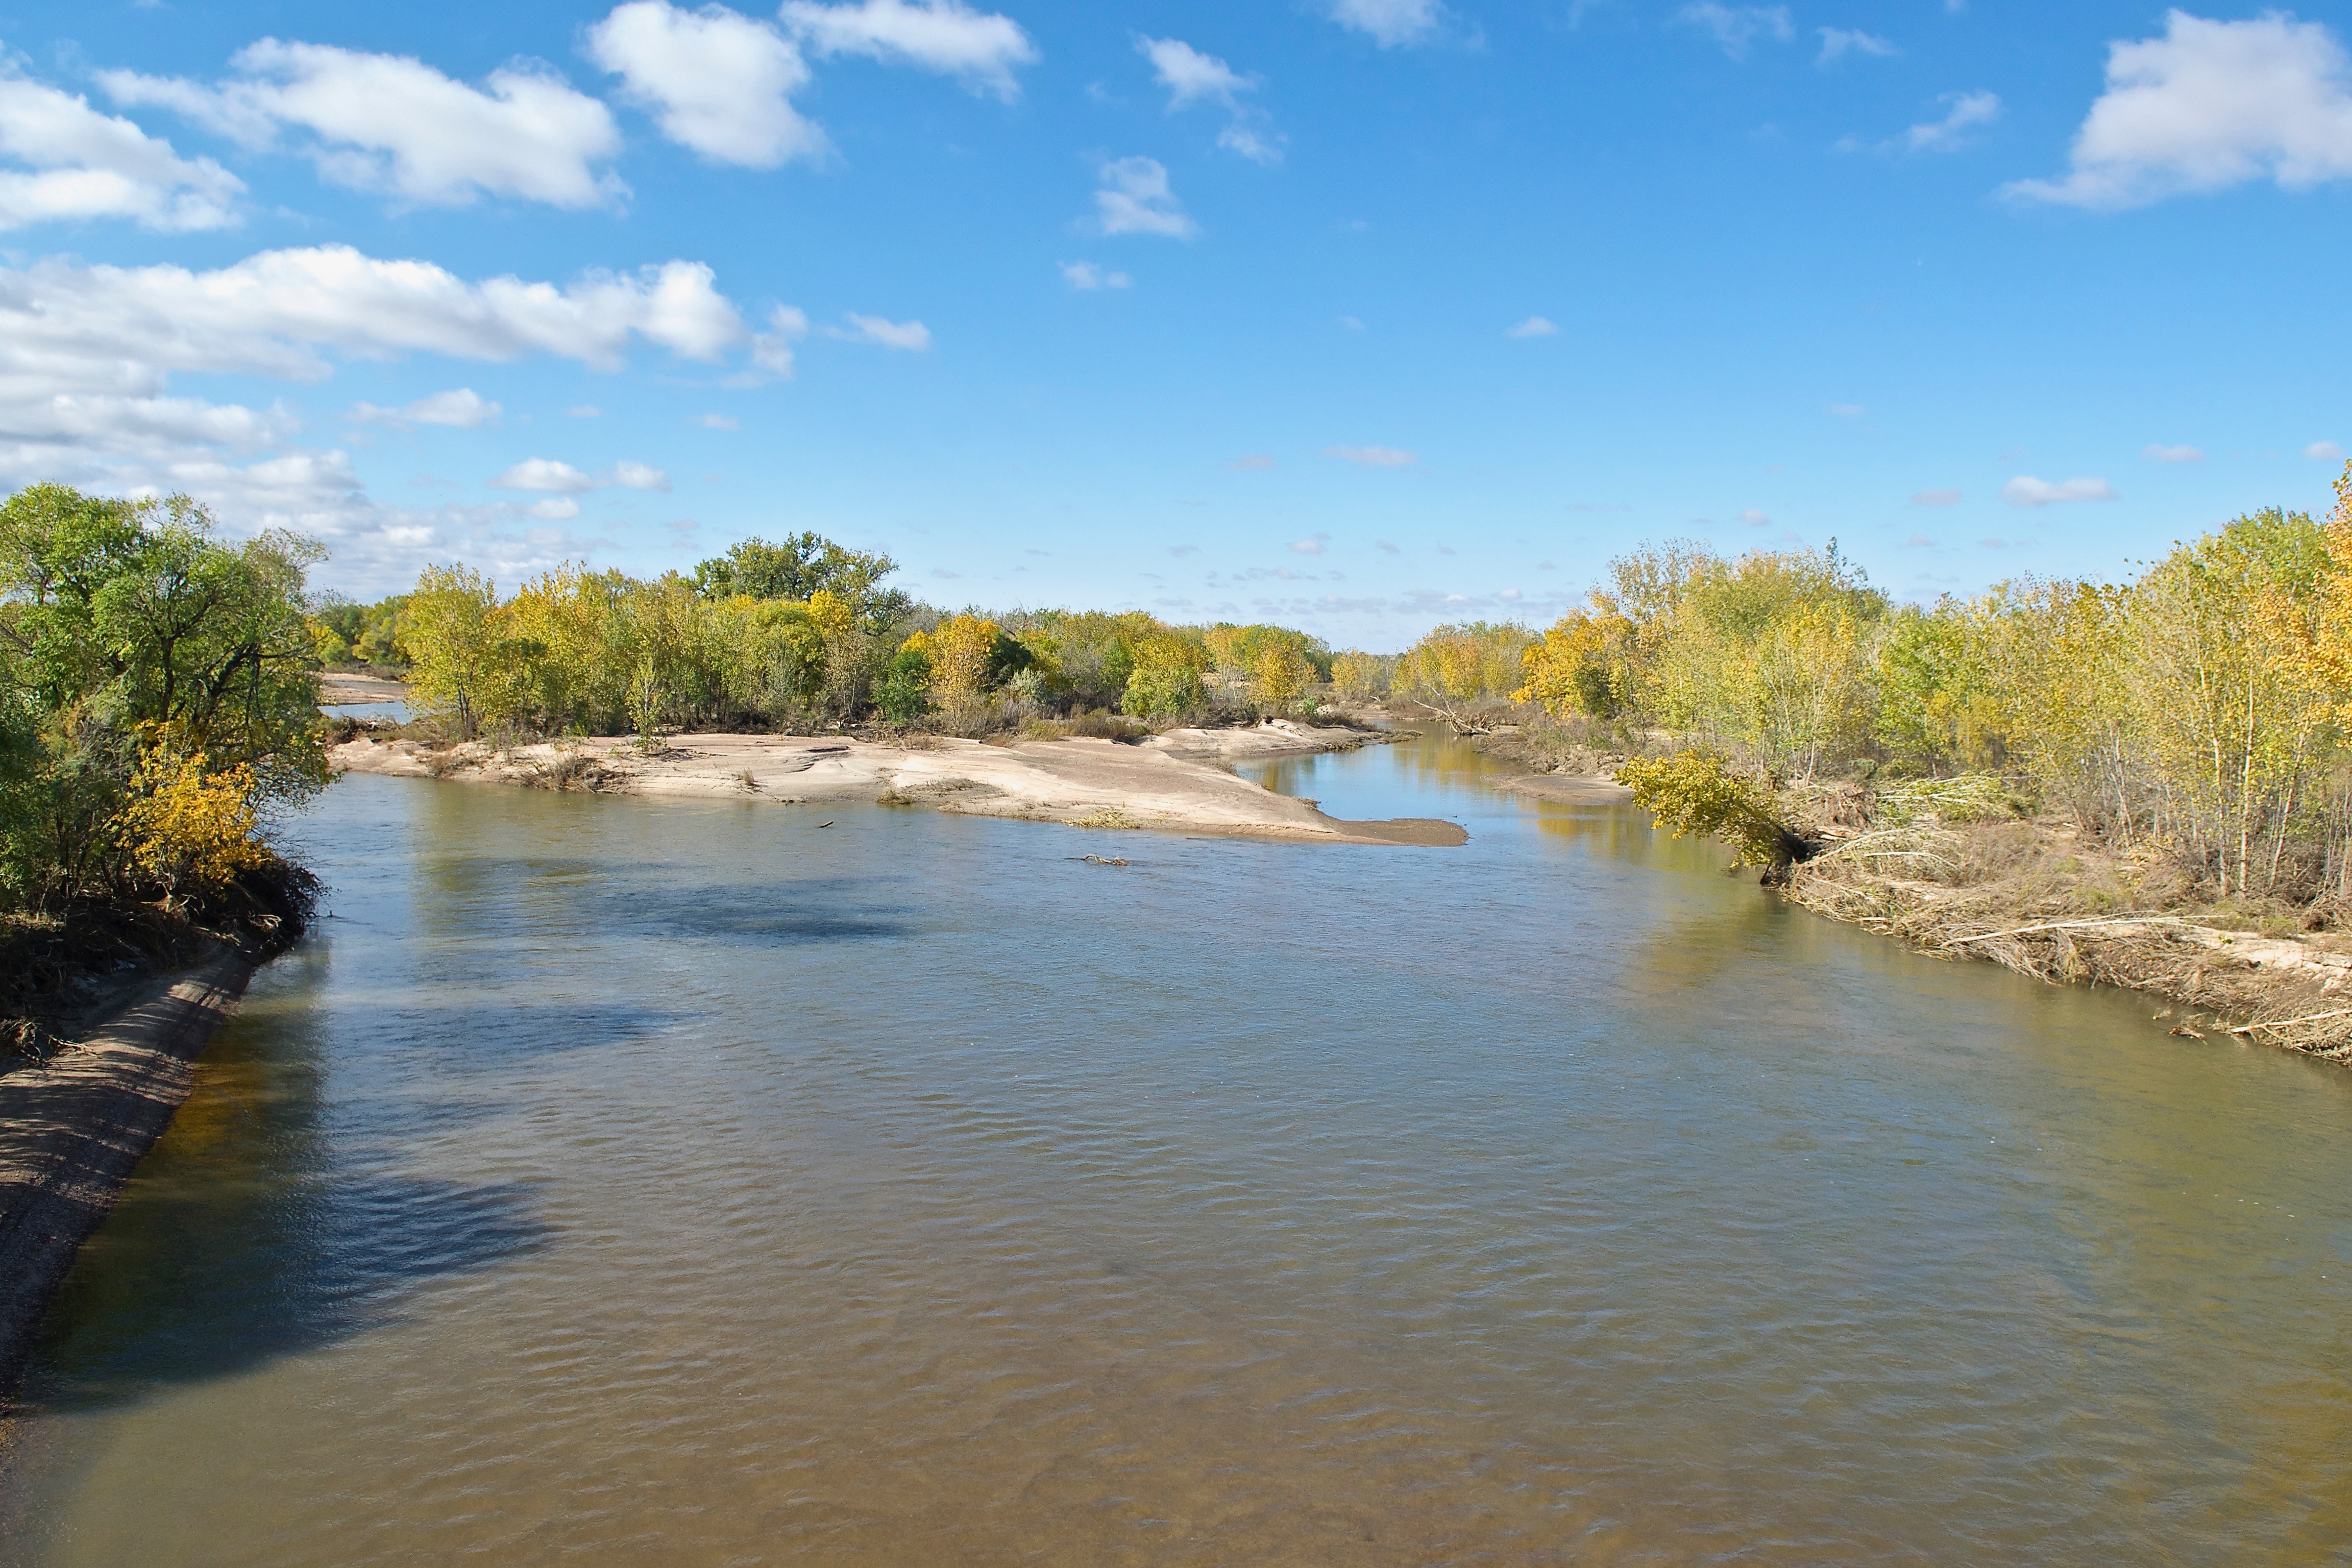 Upstream Platte at Atwood Bridge (288 cfs) (10-15-13)